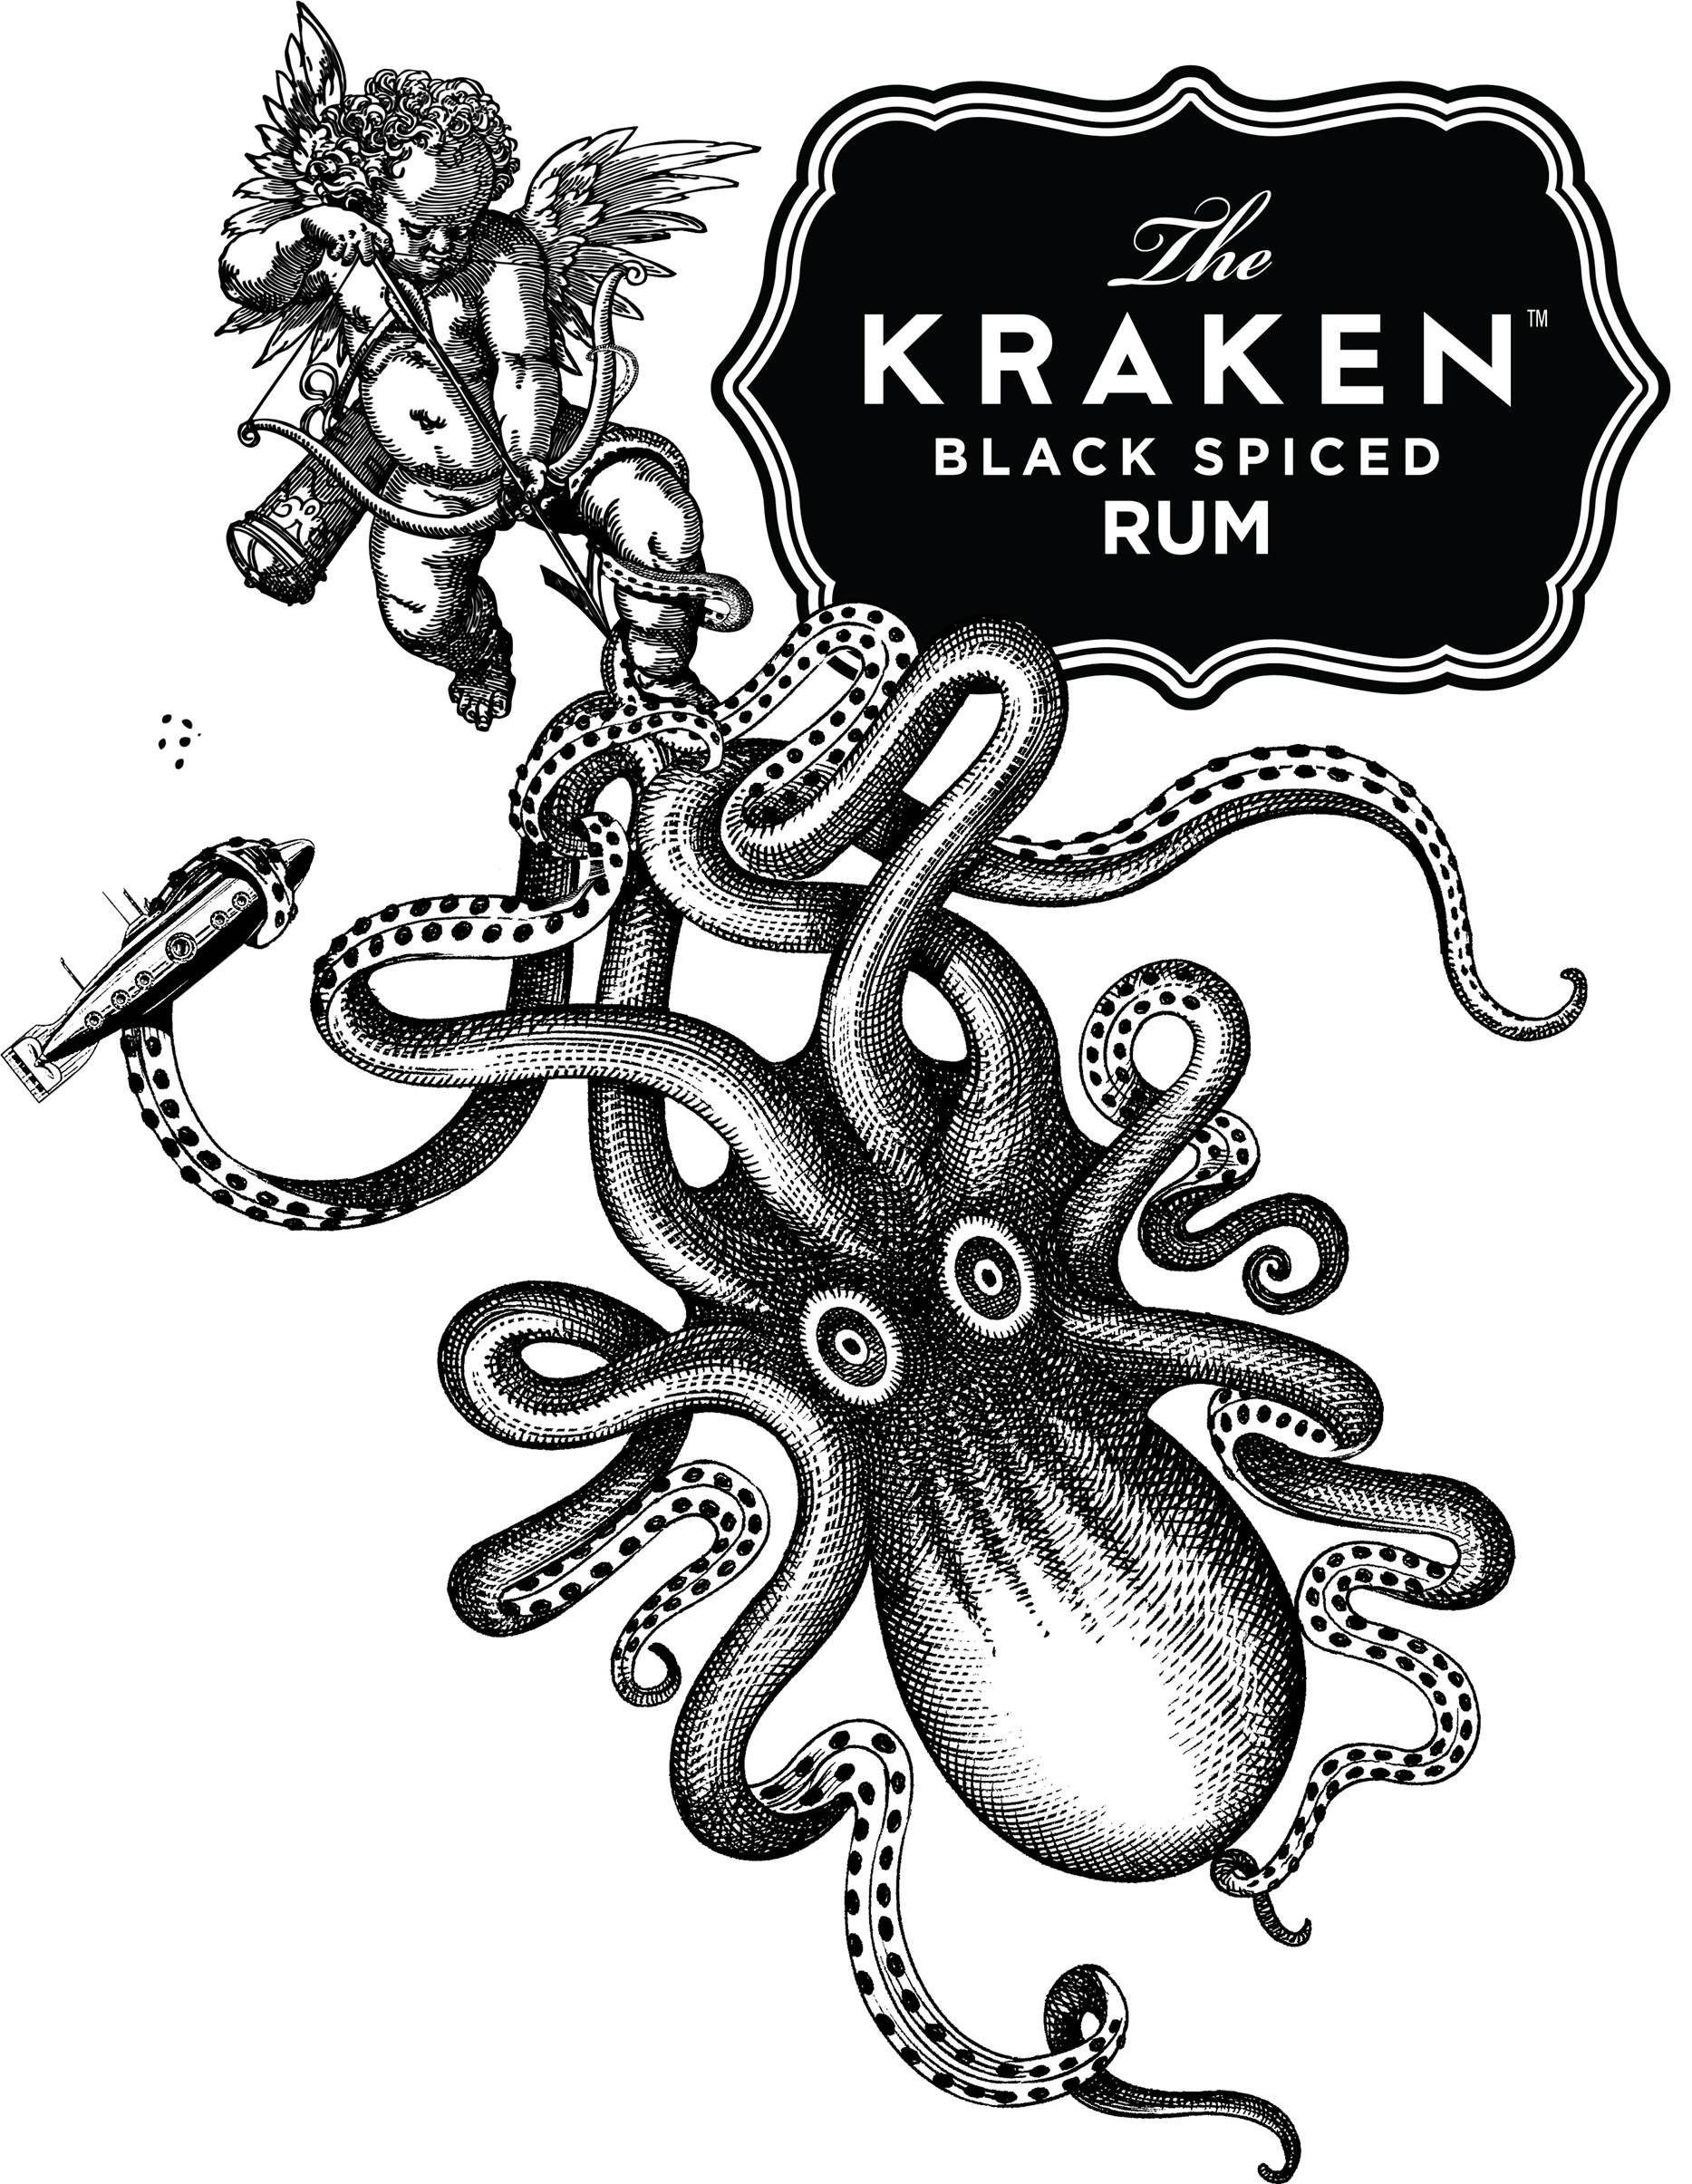 Think ink florist selling only black roses emma thomas - Kraken rum pictures ...